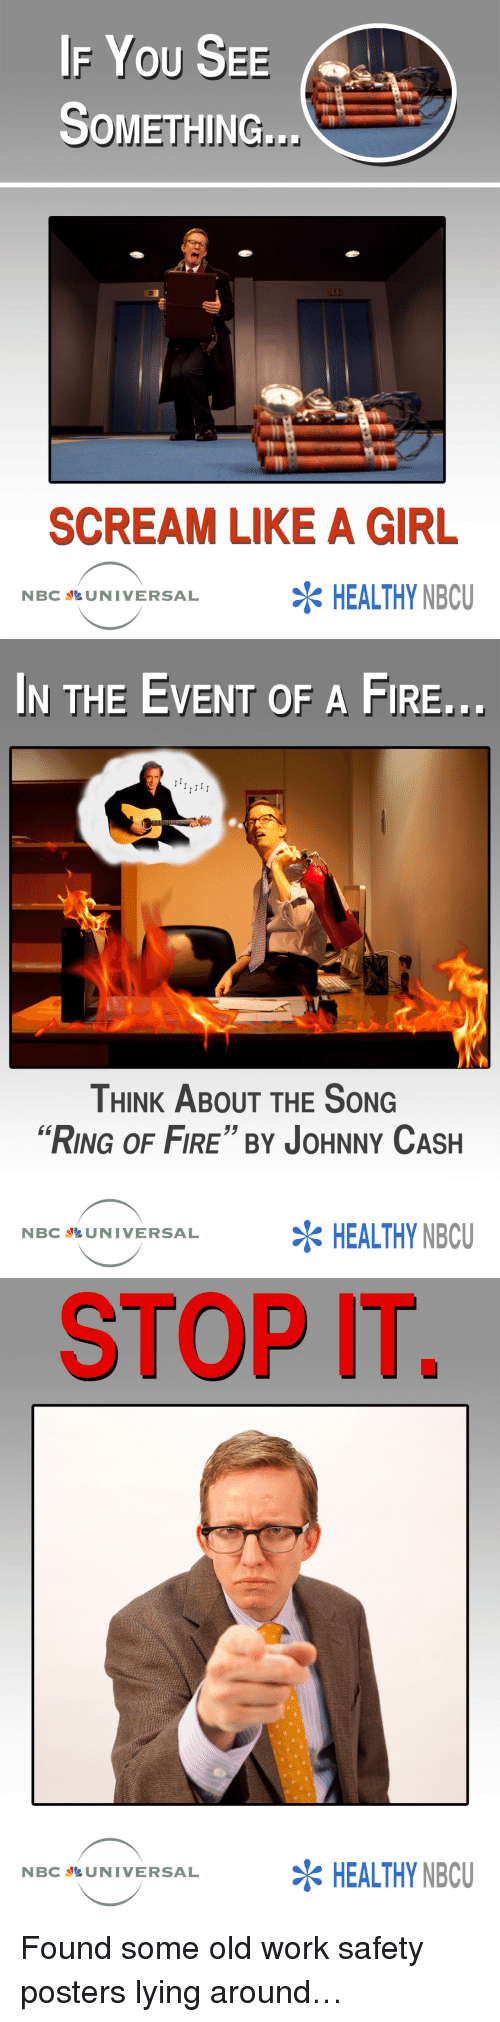 """ring of fire: IF YOU SEE  OMETHING...  SCREAM LIKE A GIRL  NBC AUNIVERSALHEALTHY NBU   IN THE EVENT OF A FIRE...  THINK ABOUT THE SONG  """"RING OF FIRE"""" BY JOHNNY CASH  NBC NUNIVERSALHEALTHY NBU   STOP IT  38  NBC NUNIVERSALHEALTHY NBCU <p><span>Found some old work safety posters lying around&hellip;</span></p>"""